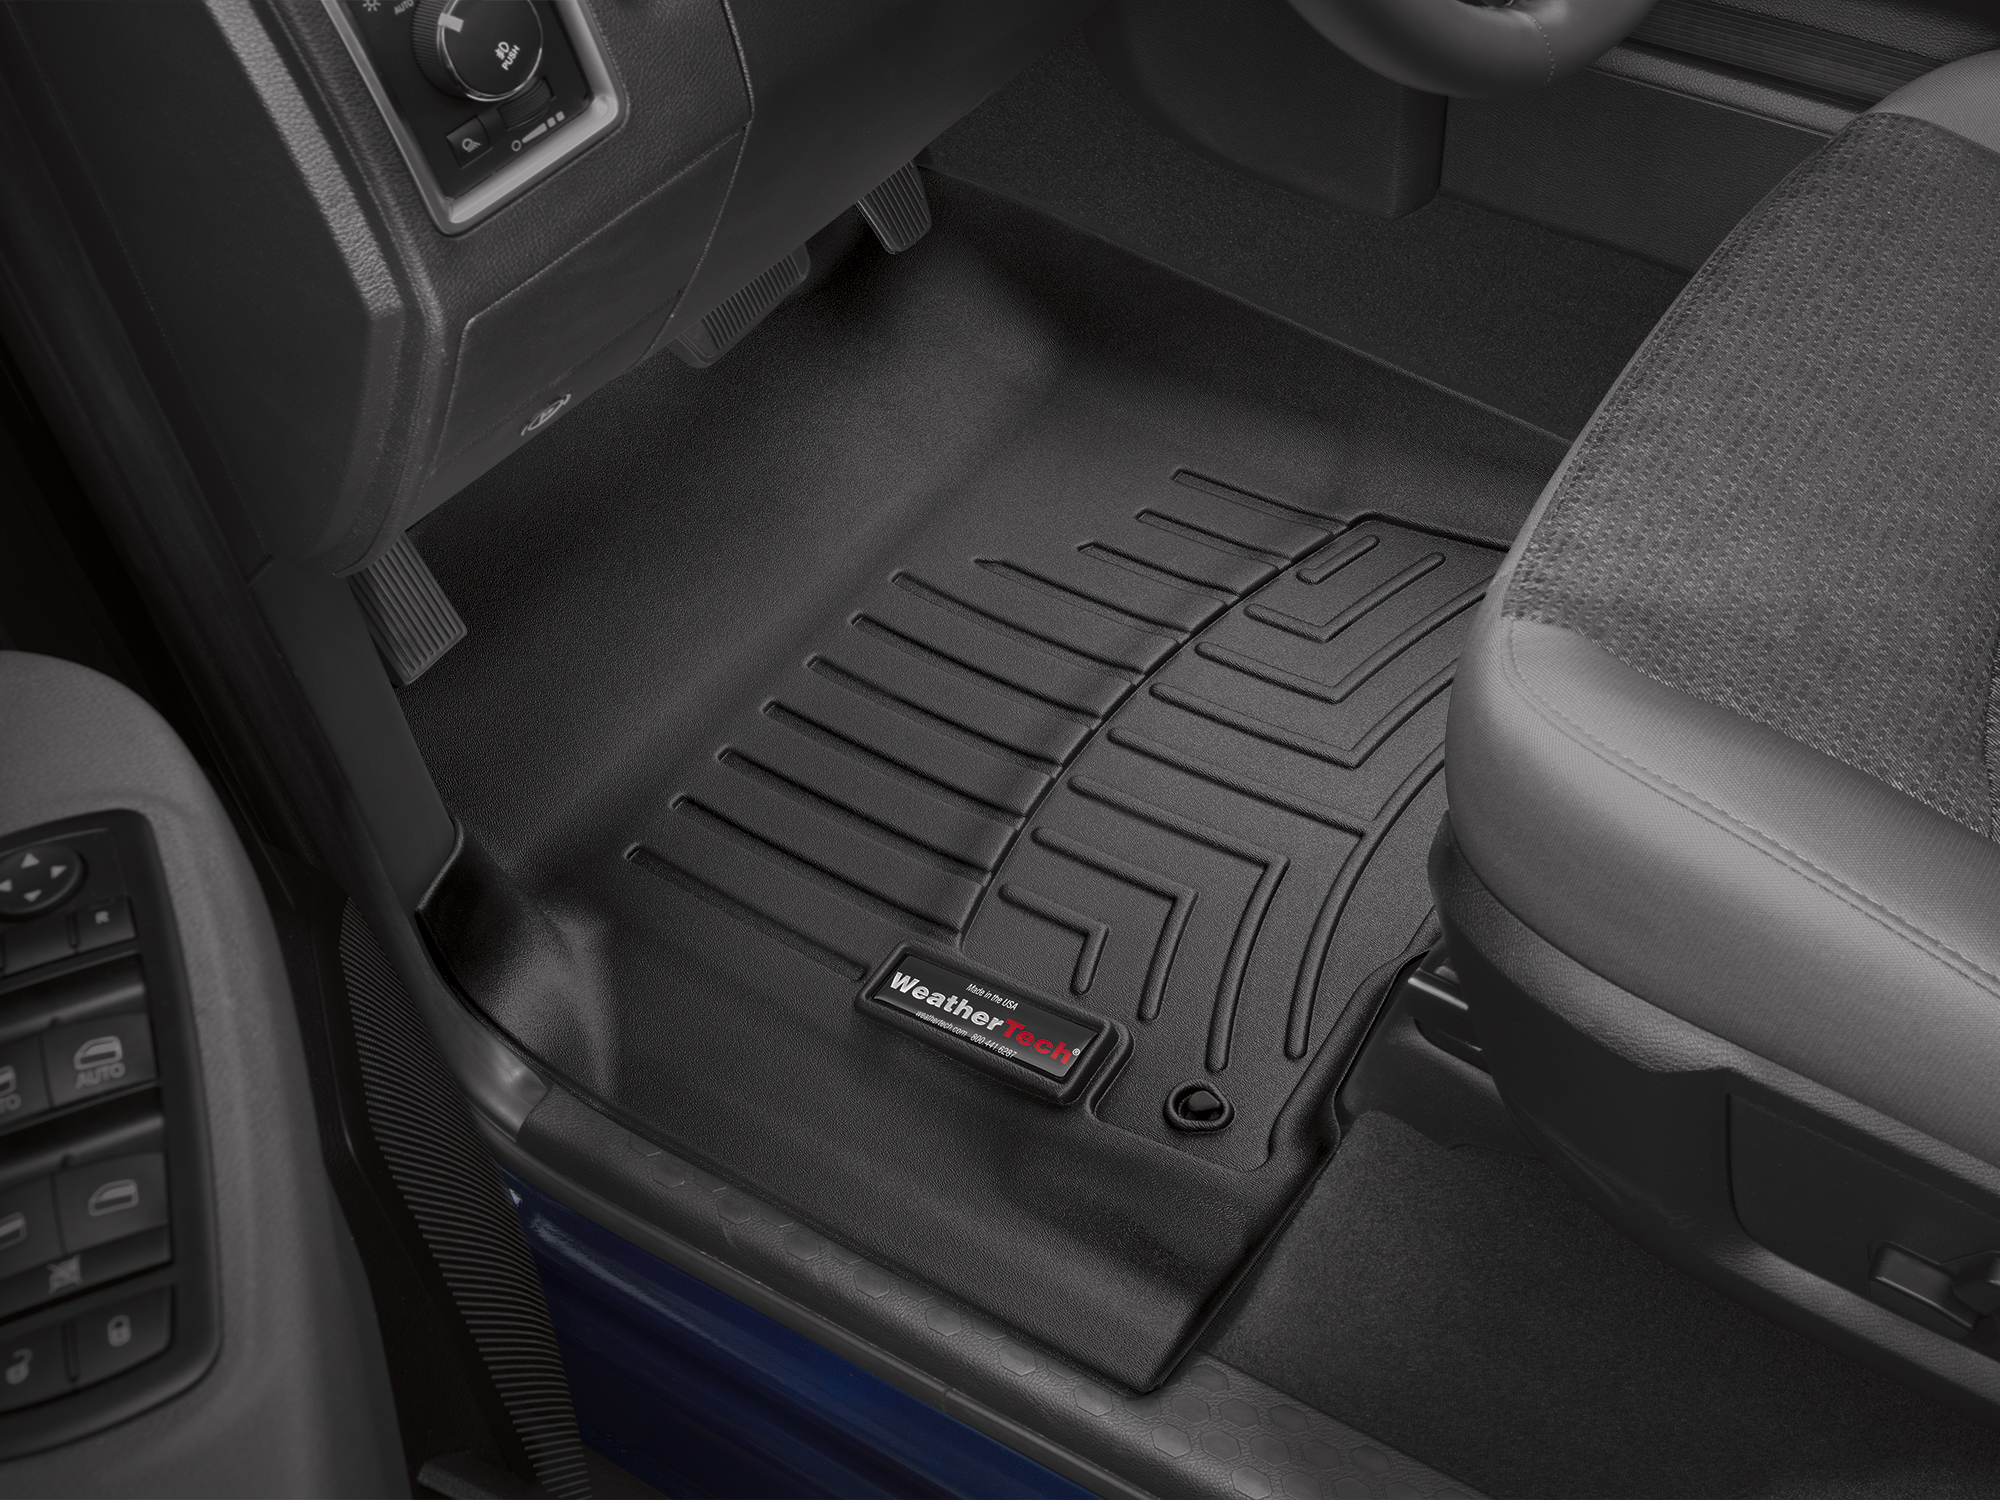 WeatherTech FloorLiner Mats for 2019 Dodge RAM Truck 1500 1st Row